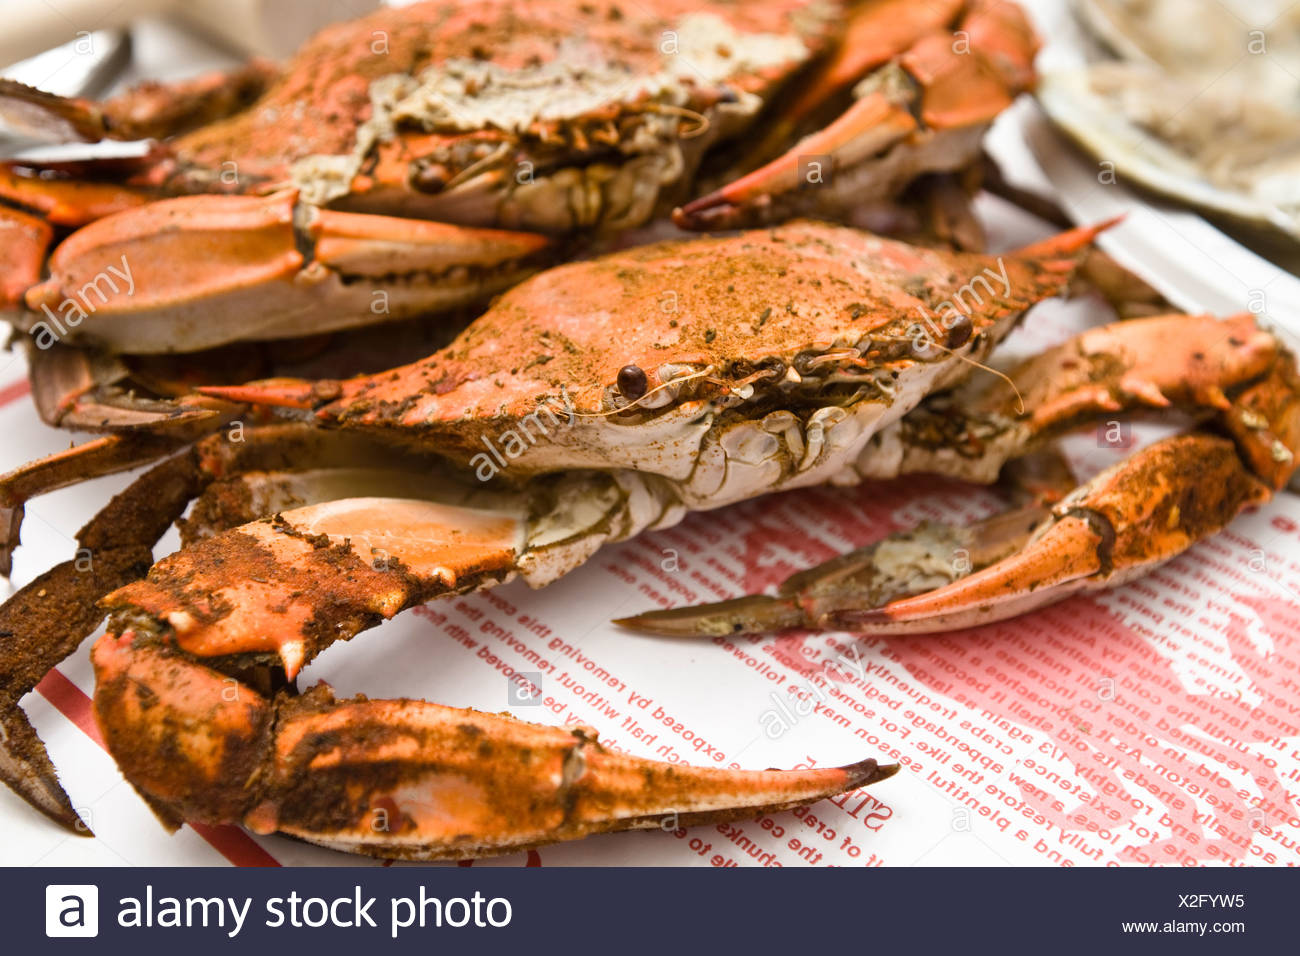 Maryland, Chesapeake Bay, St. Michaels,  Cooked Crabs. - Stock Image